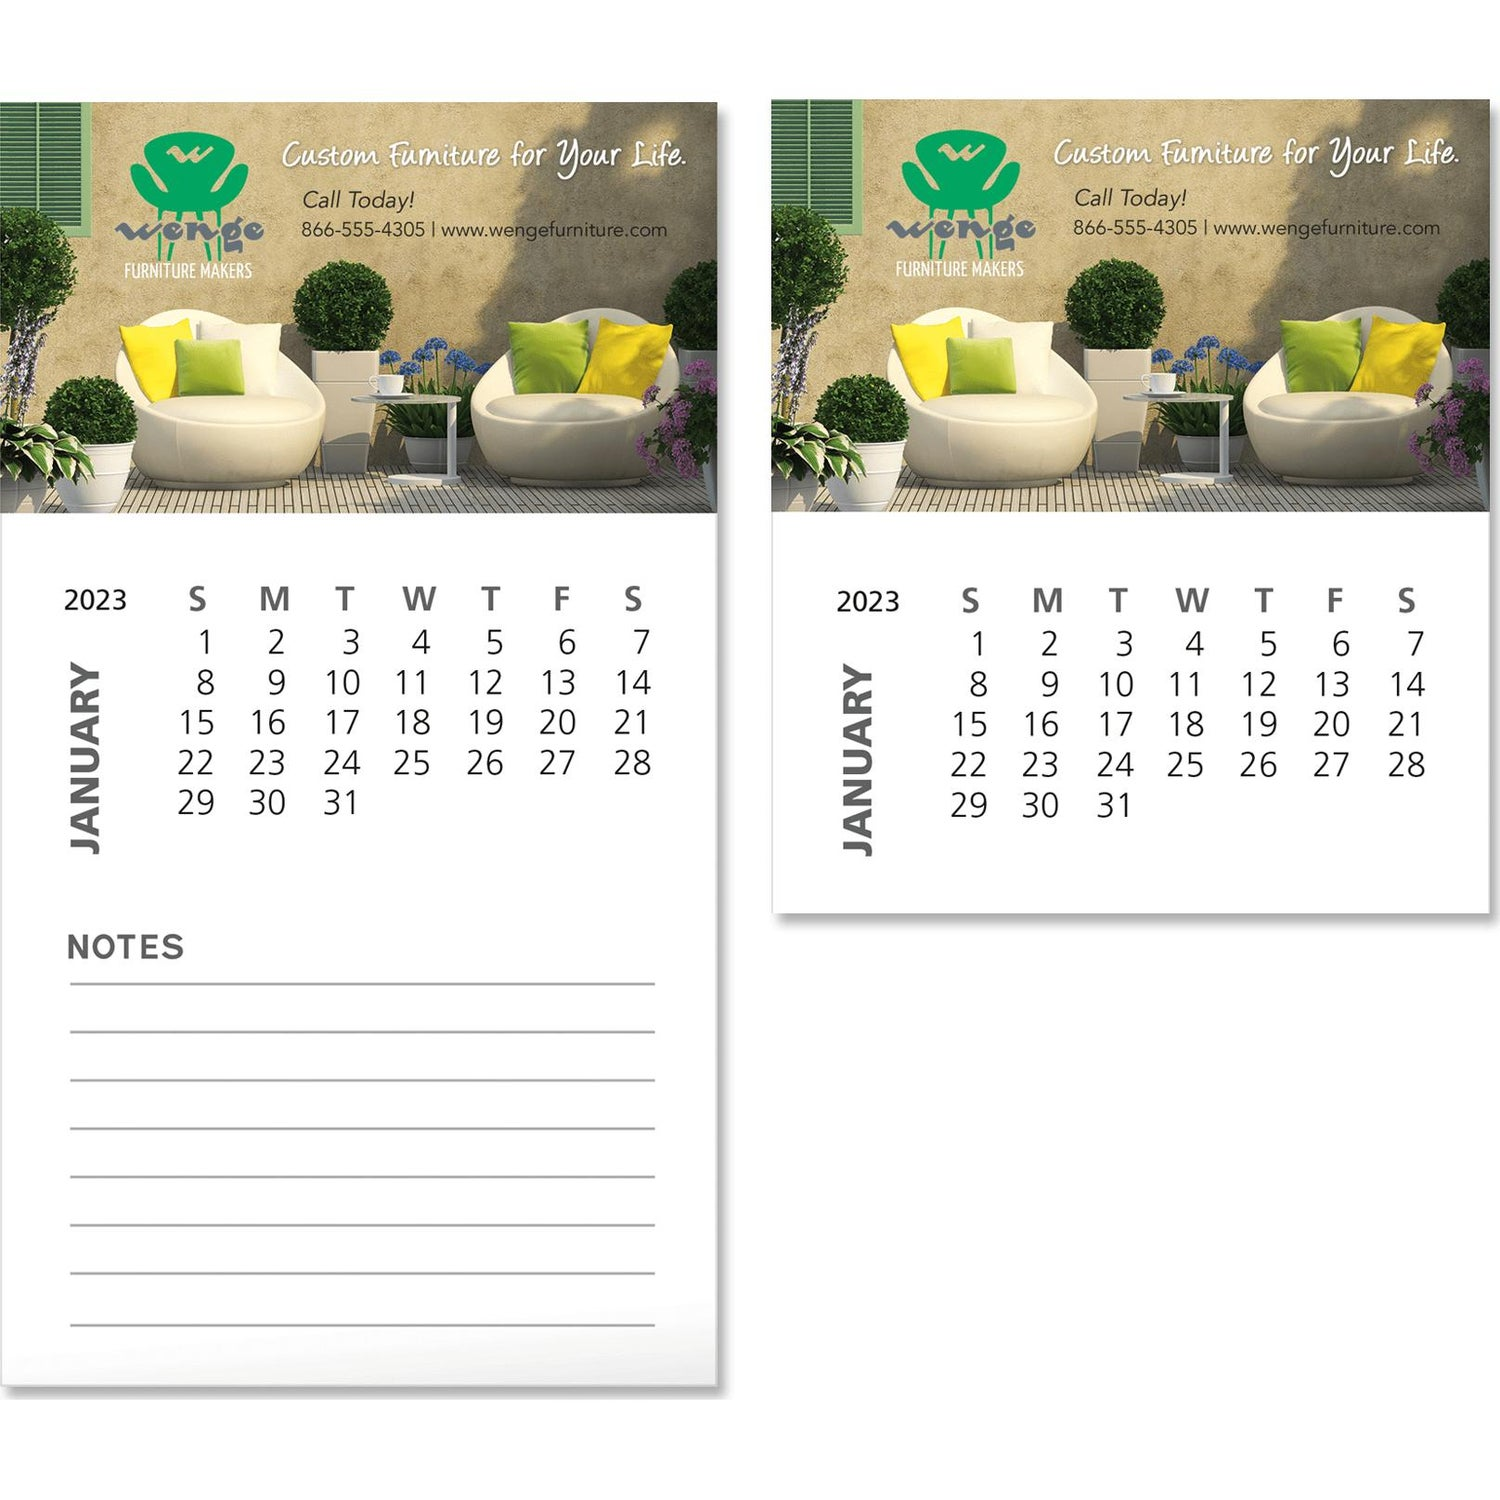 Promotional 12 sheets business card magnet with calendars with full color imprint business card magnet with calendar 12 sheets with your slogan colourmoves